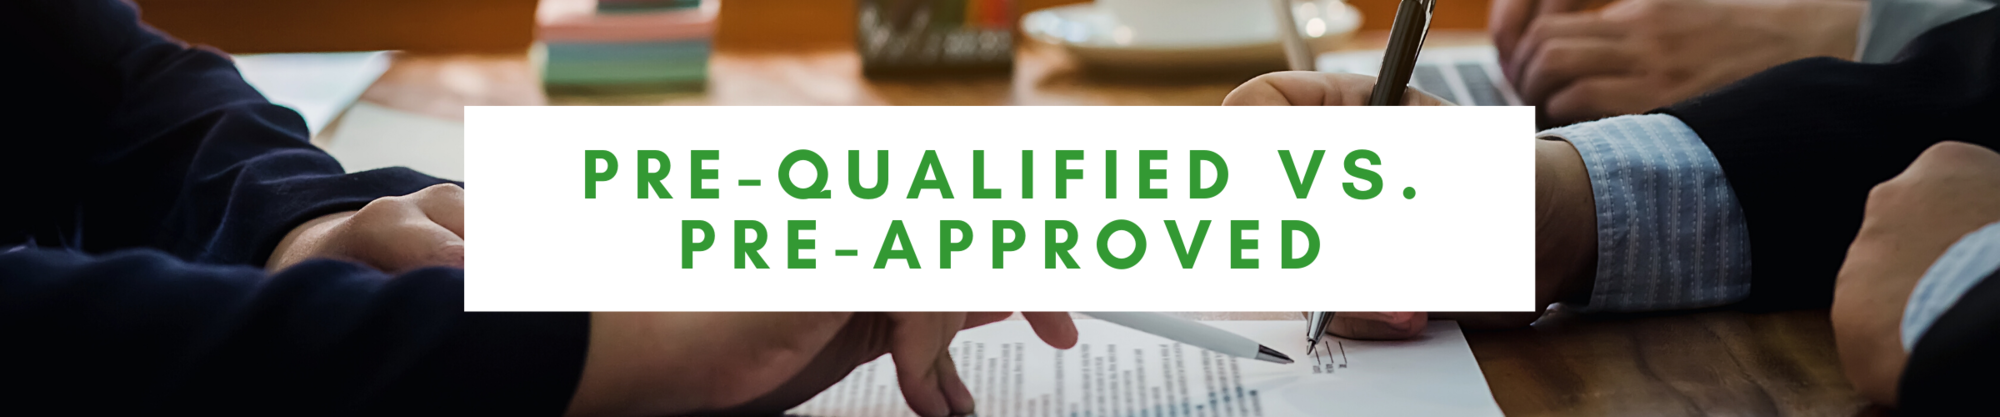 Pre-Qualified vs. Pre-Approved for a Mortgage | John Kilby | Kansas City Homes